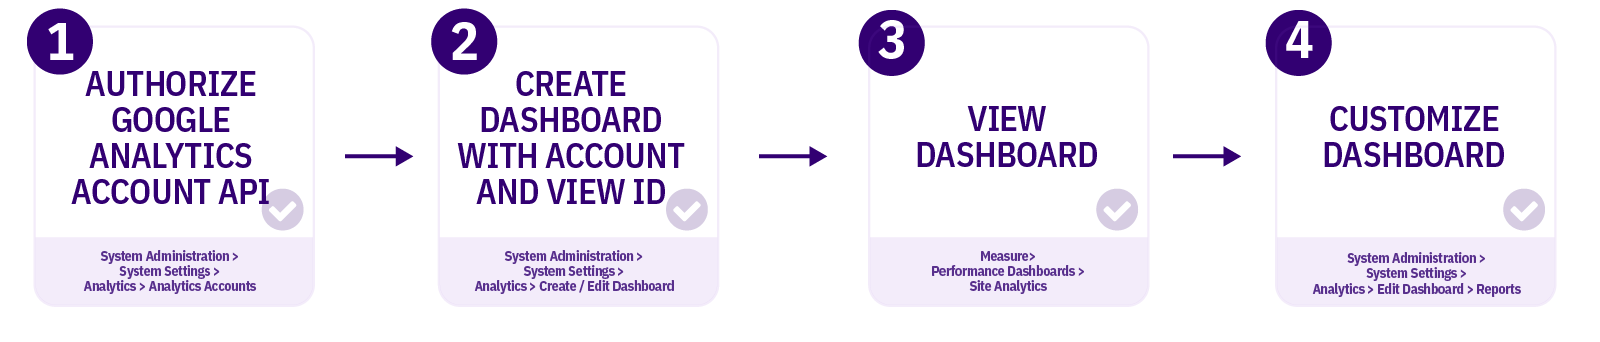 Diagram showing the steps that will be covered when creating a dashboard